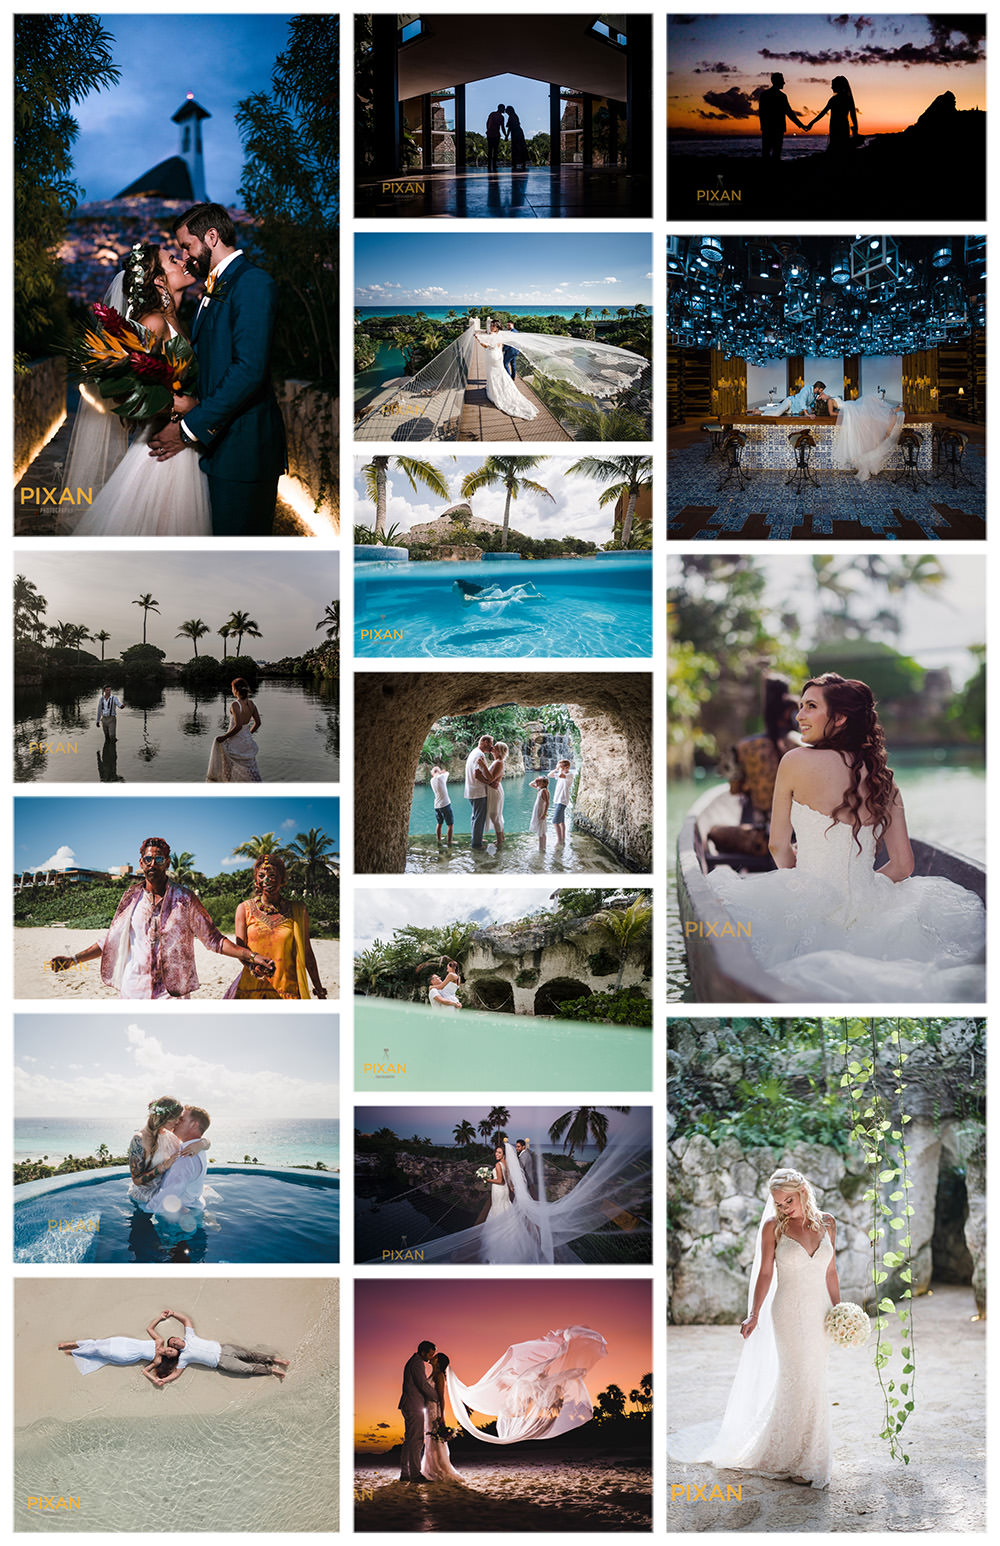 Why-Pixan-Photography-Collage-Hotel-Xcaret-Mexico